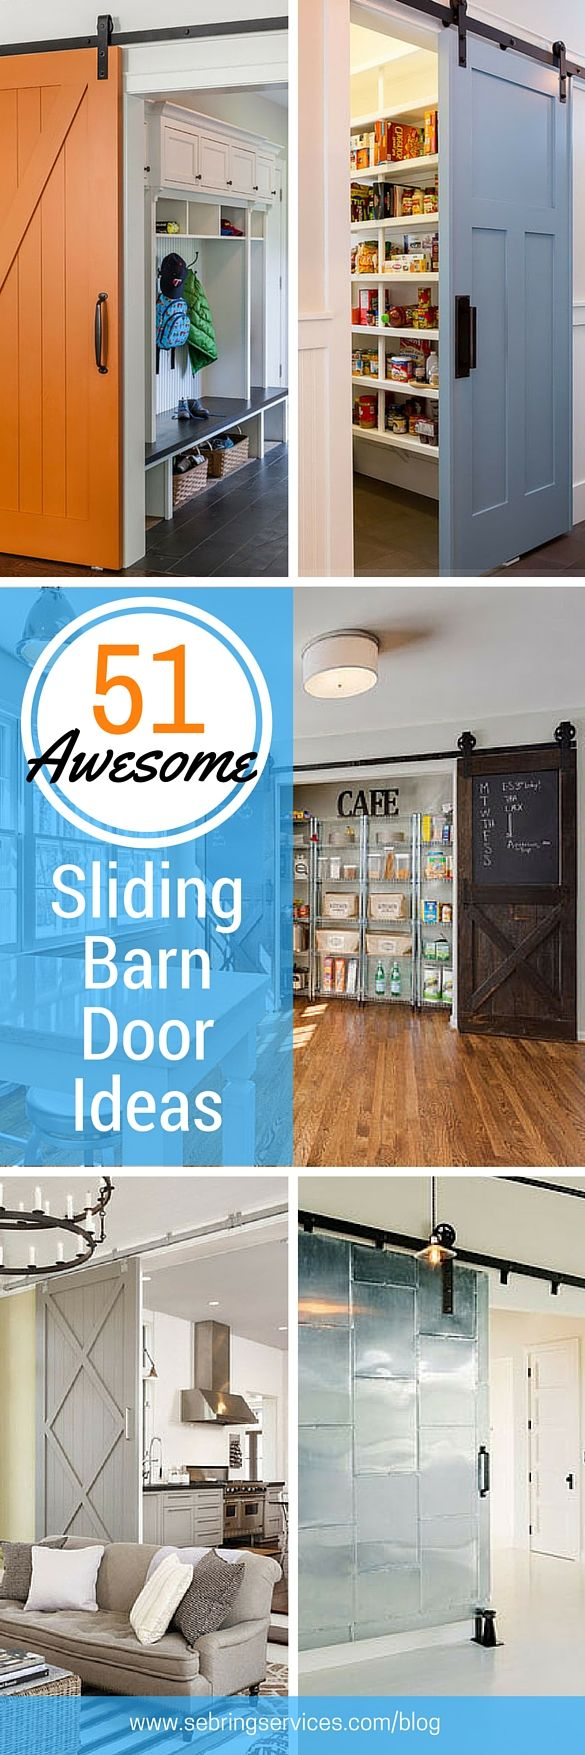 42 Awesome Rustic Home Office Designs - 45 amazing rustic home office furniture ideas 31 from homearchite com barn doors are not just for barns anymore from the countryside barns these wide